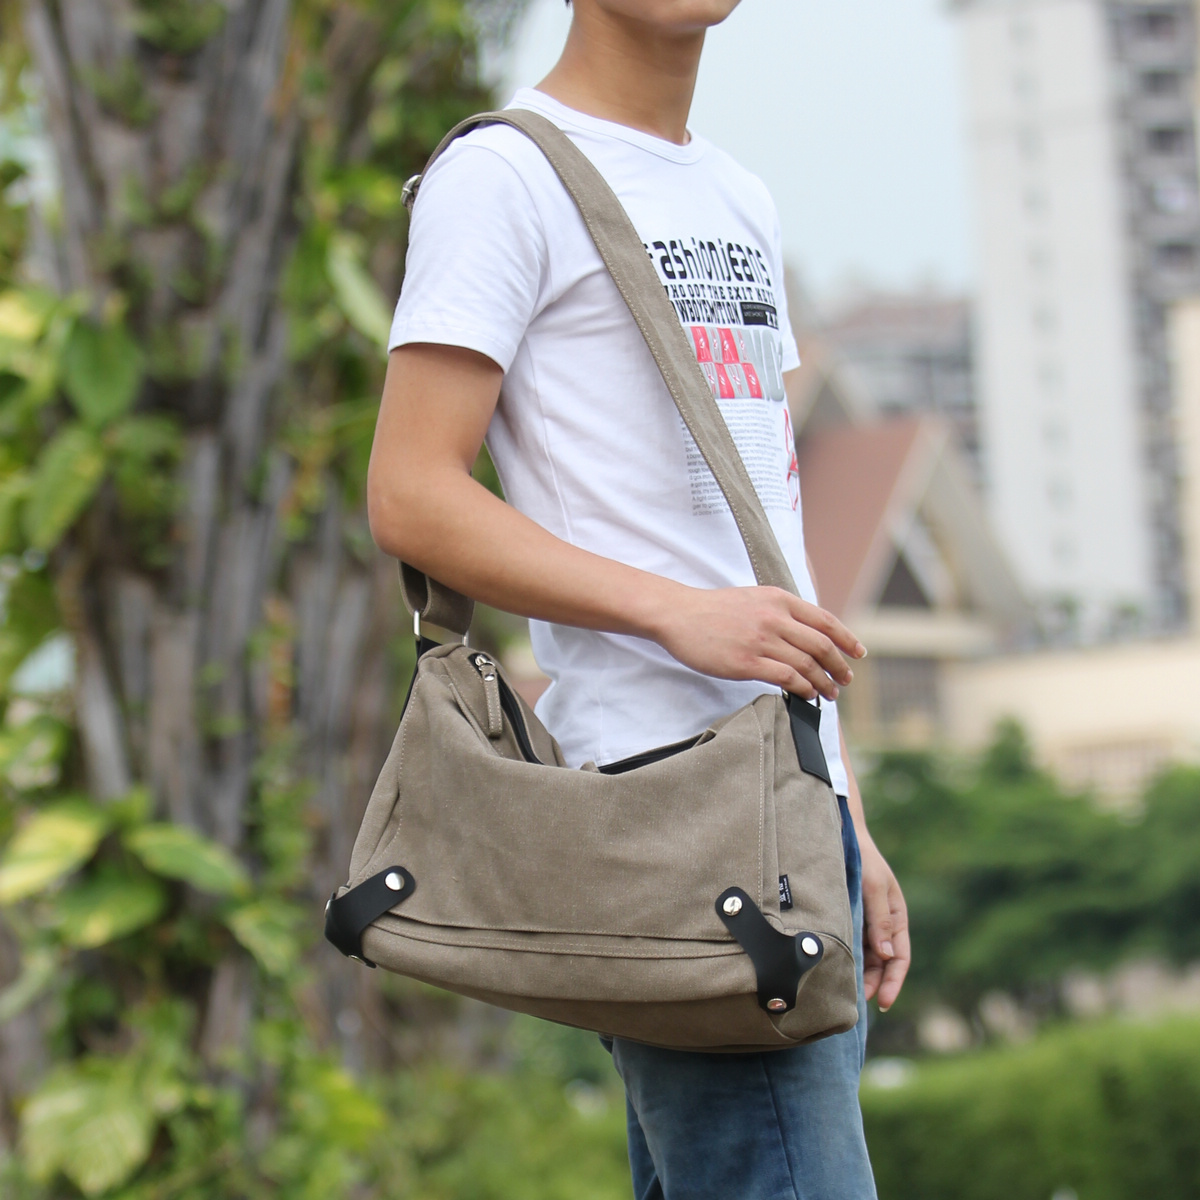 Langer canvas bag 2016 korean version of schoolbags shoulder bag messenger bag retro bag brigade line tide bag man bag tide